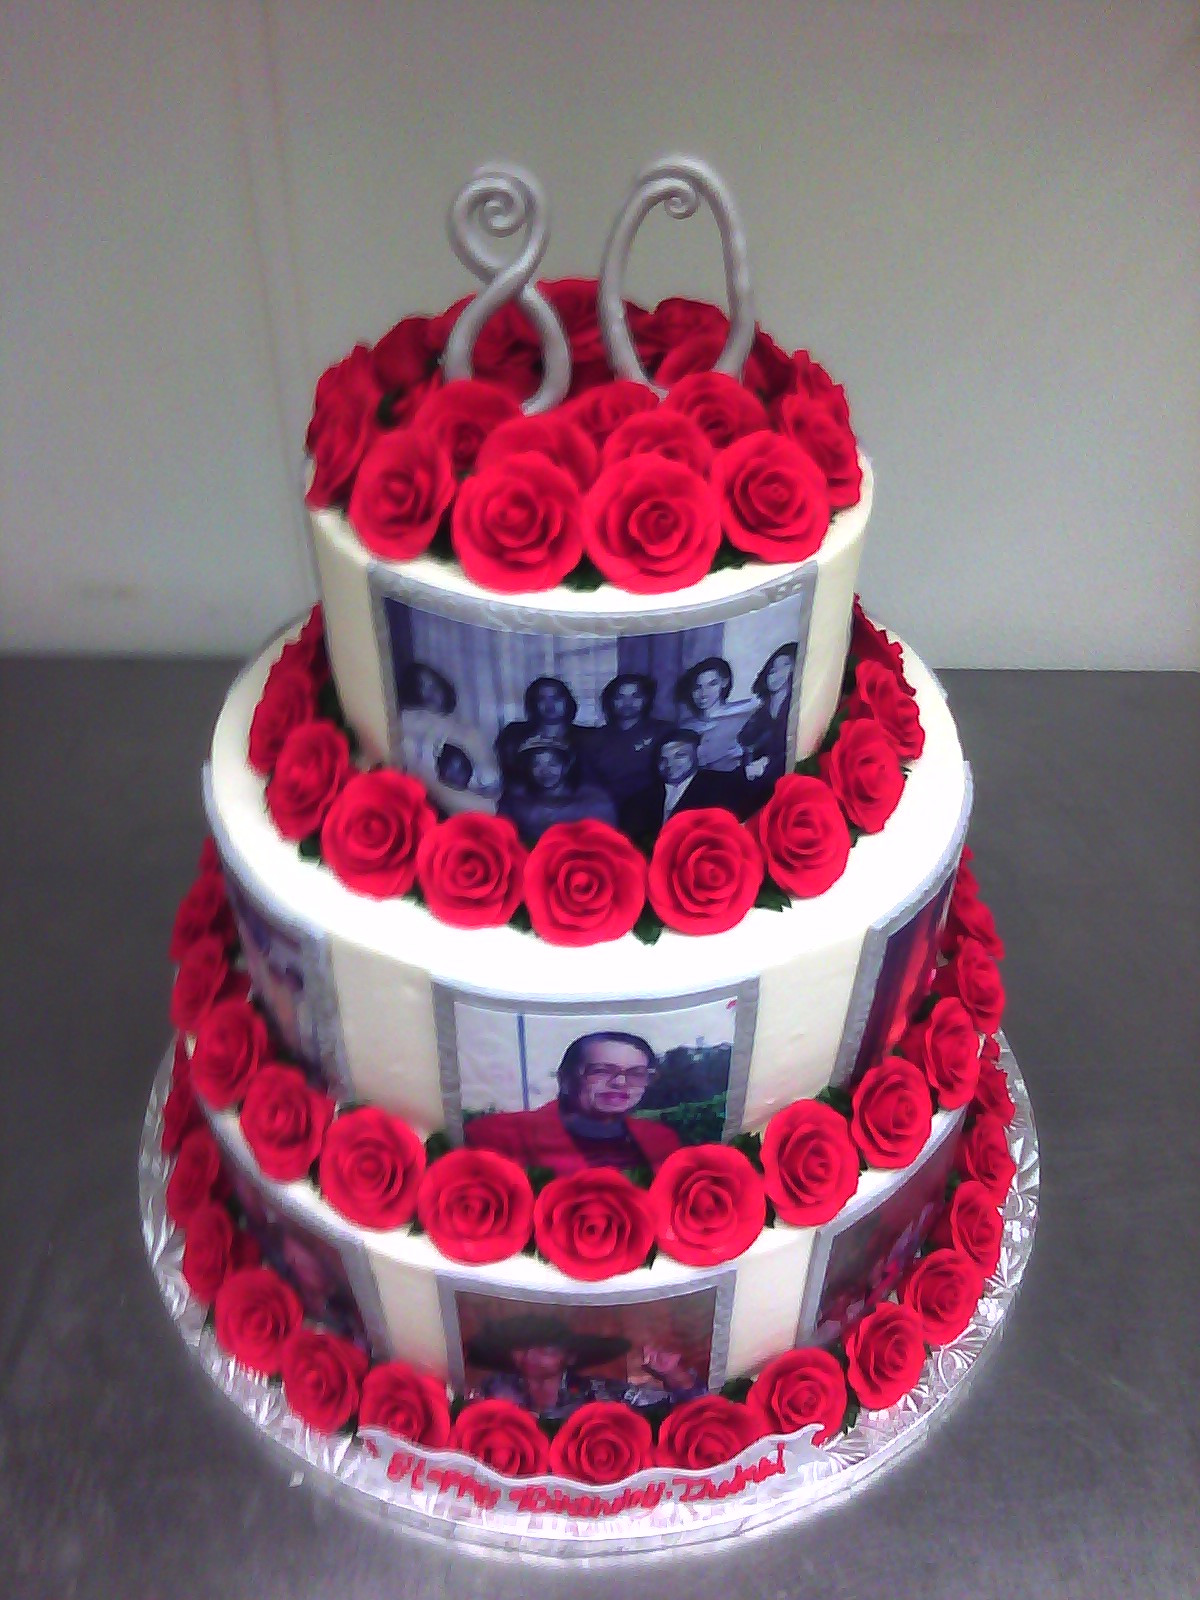 Best ideas about Birthday Cake Photo . Save or Pin Rosey 80th Birthday Cake Now.